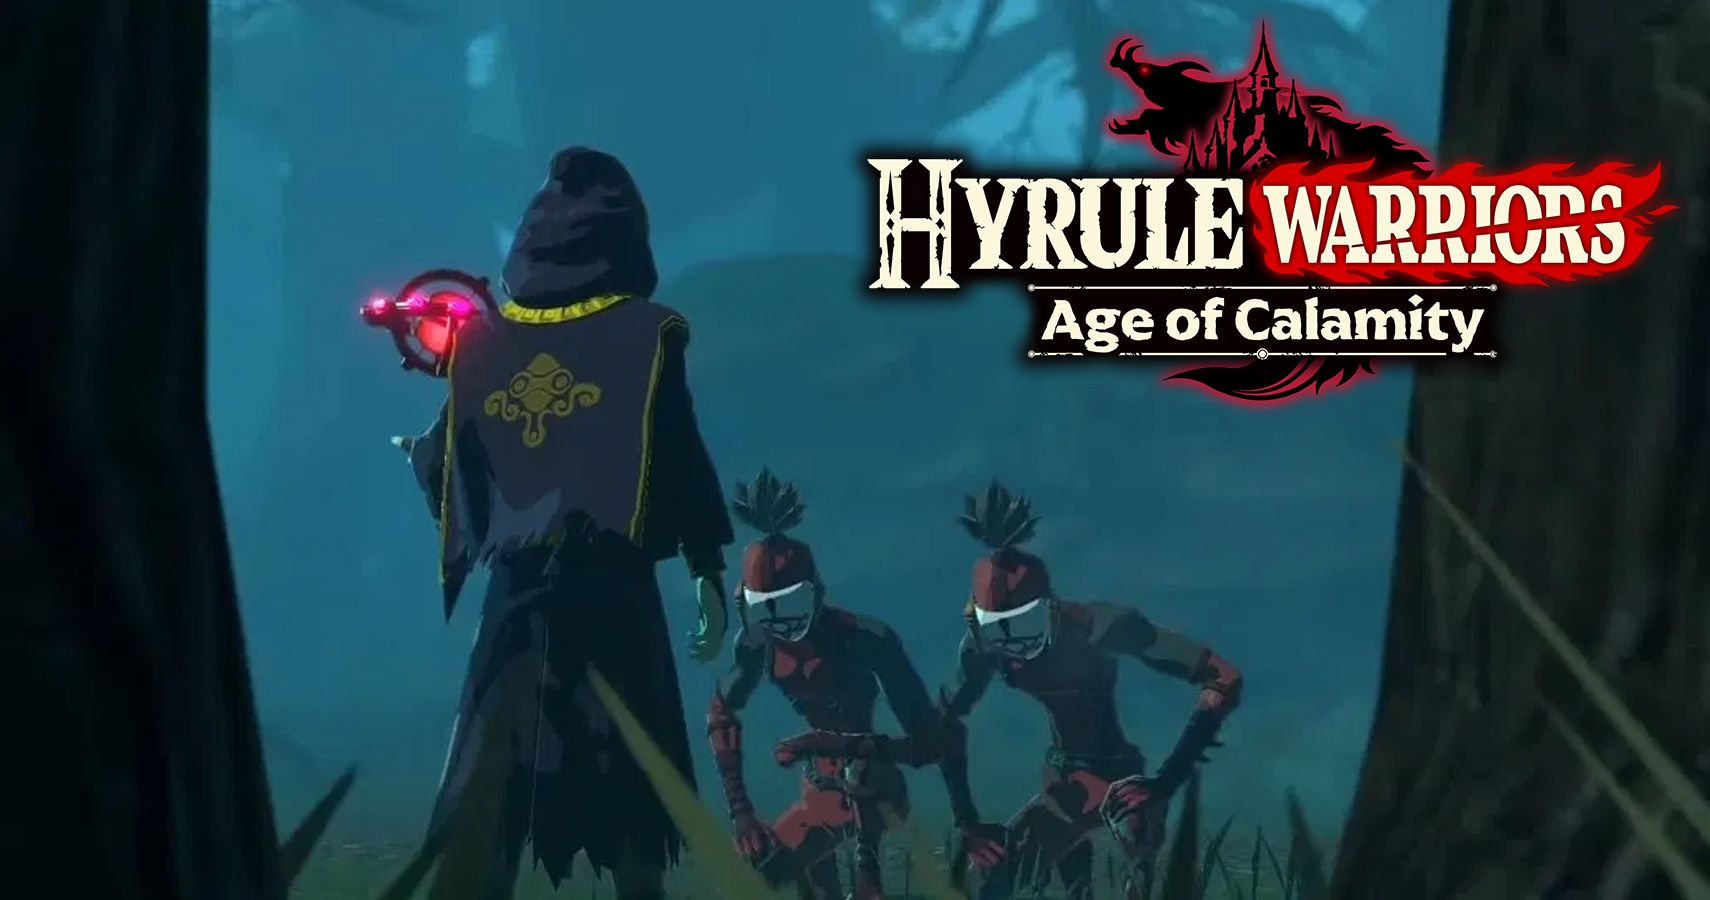 Latest Hyrule Warriors: Age Of Calamity Trailer Shows Off The Yiga Clan